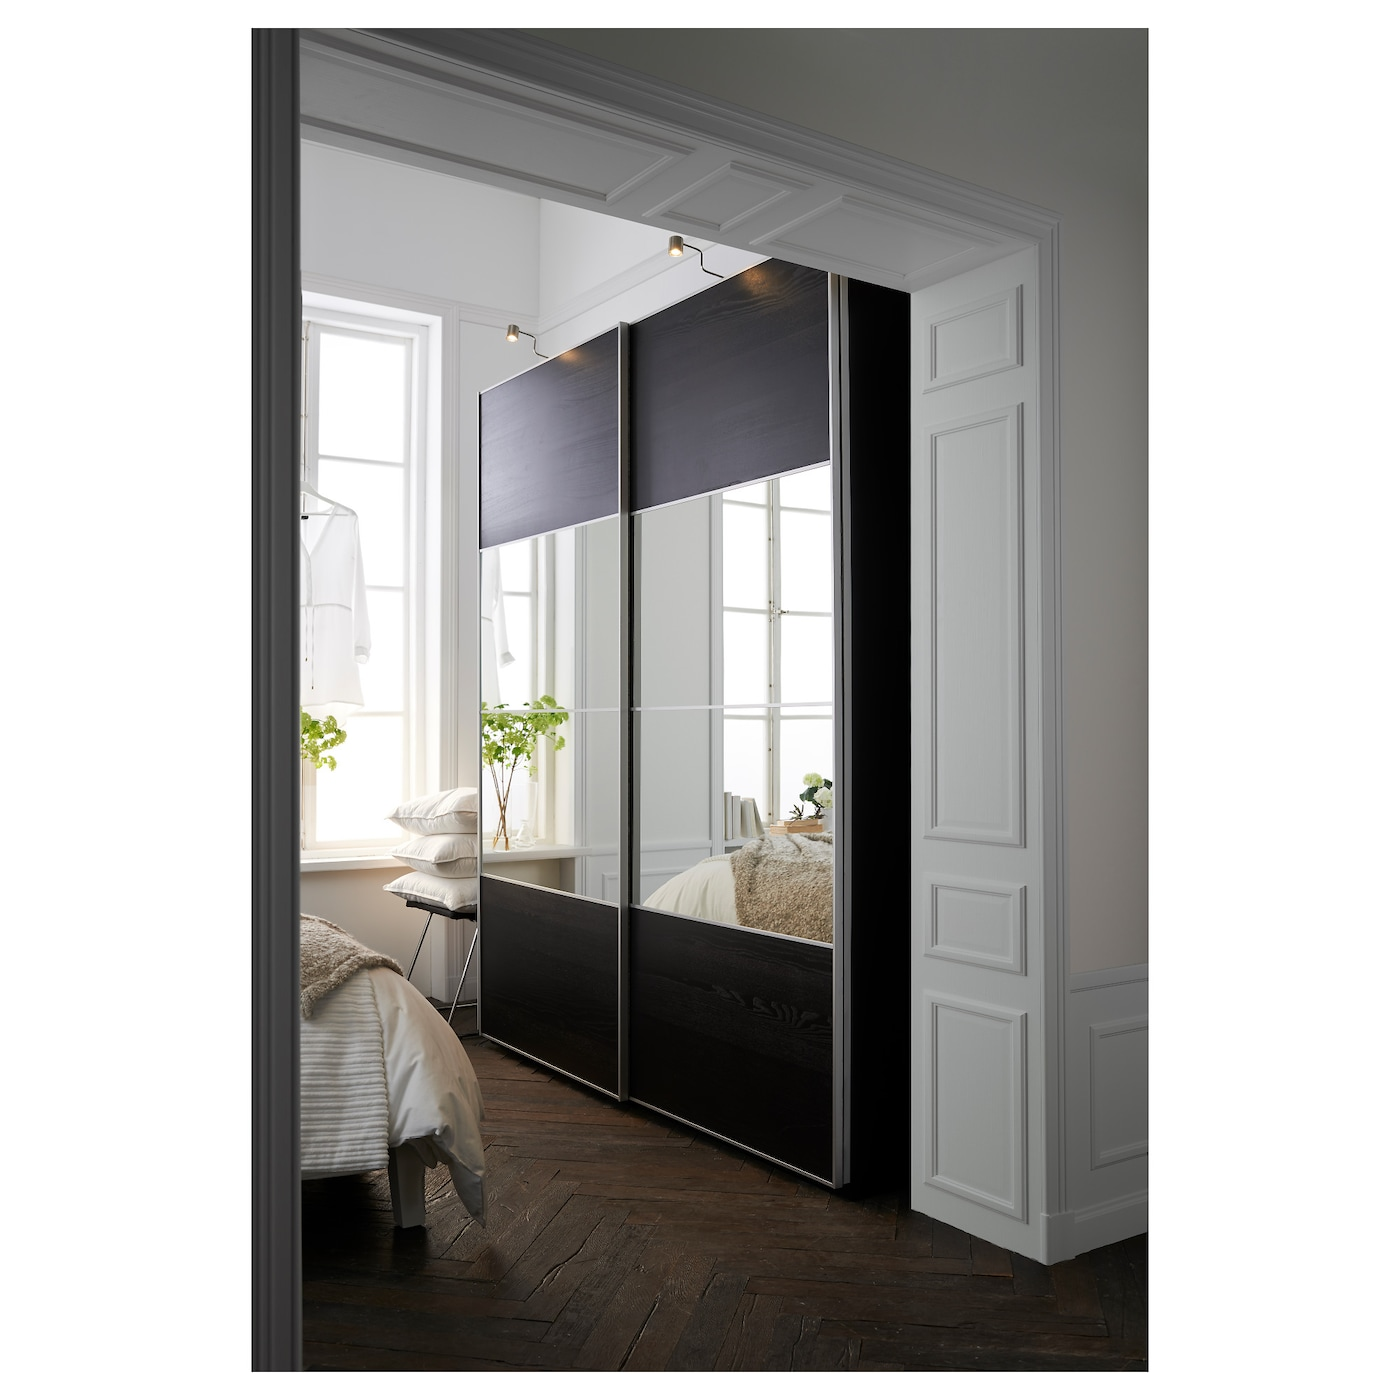 Pax wardrobe black brown auli ilseng 200x66x236 cm ikea for Armoire une porte